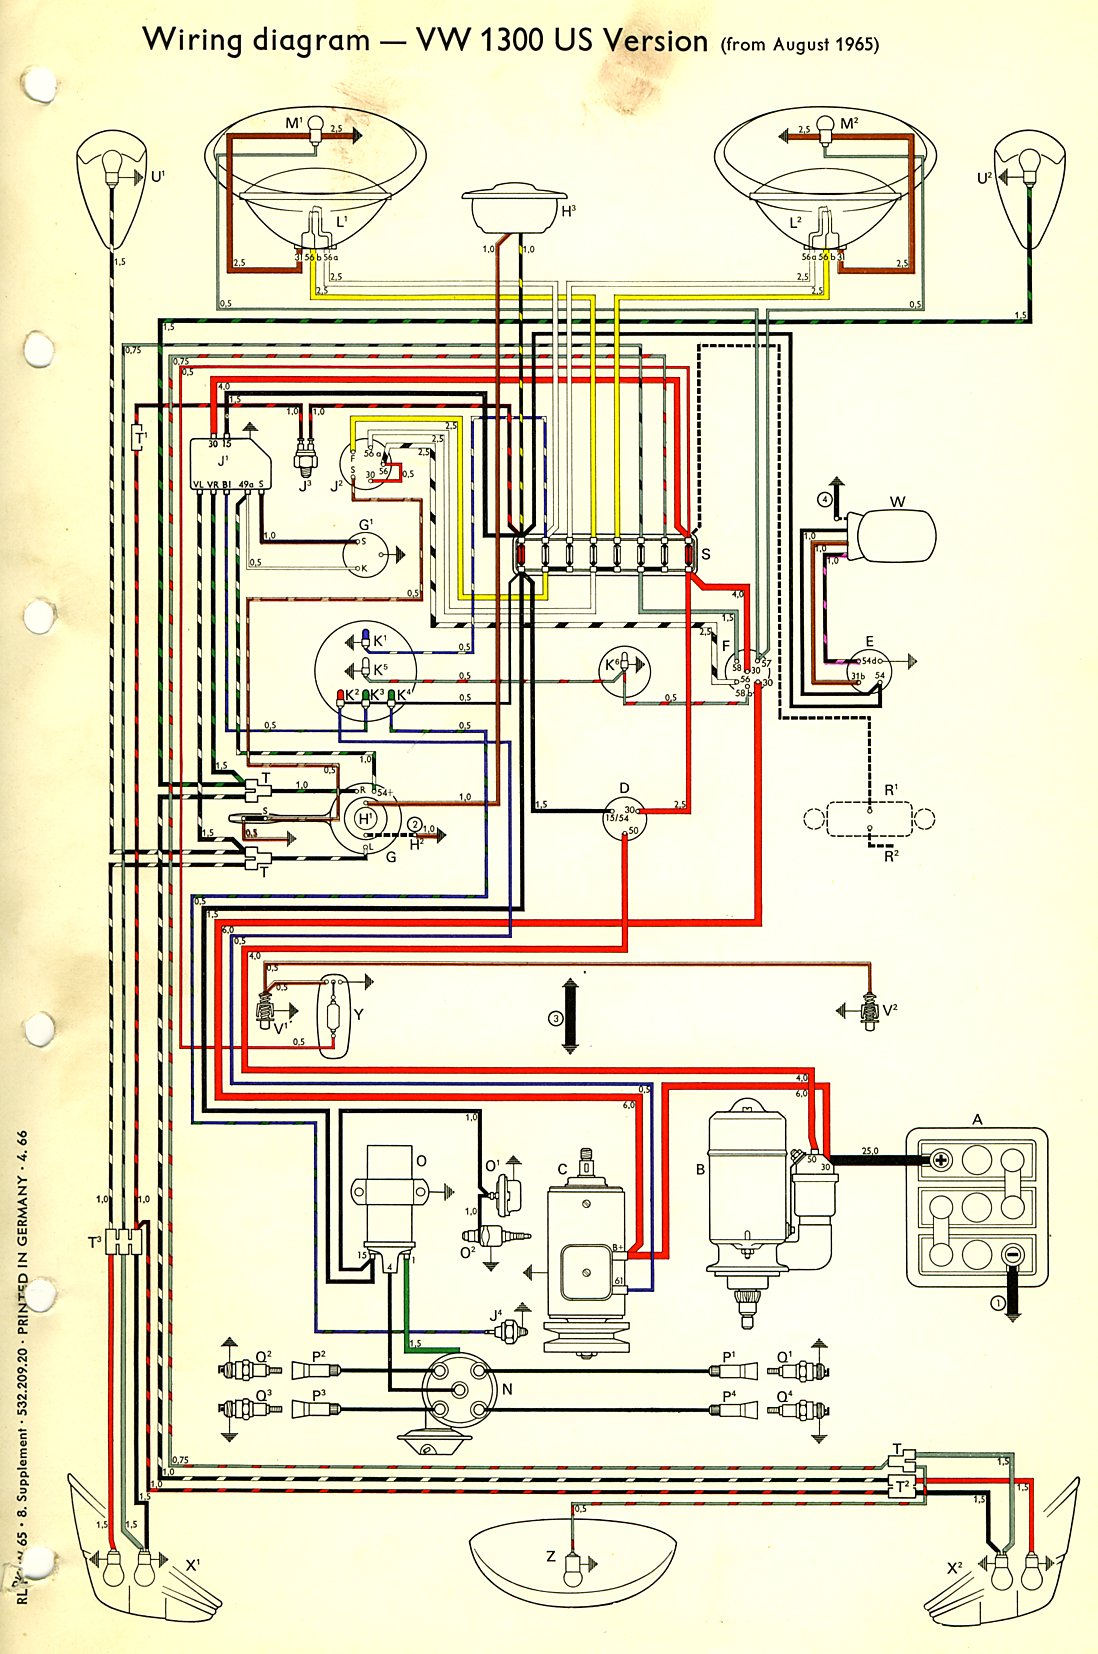 Wiringt1 on type 1 vw coil wiring diagram